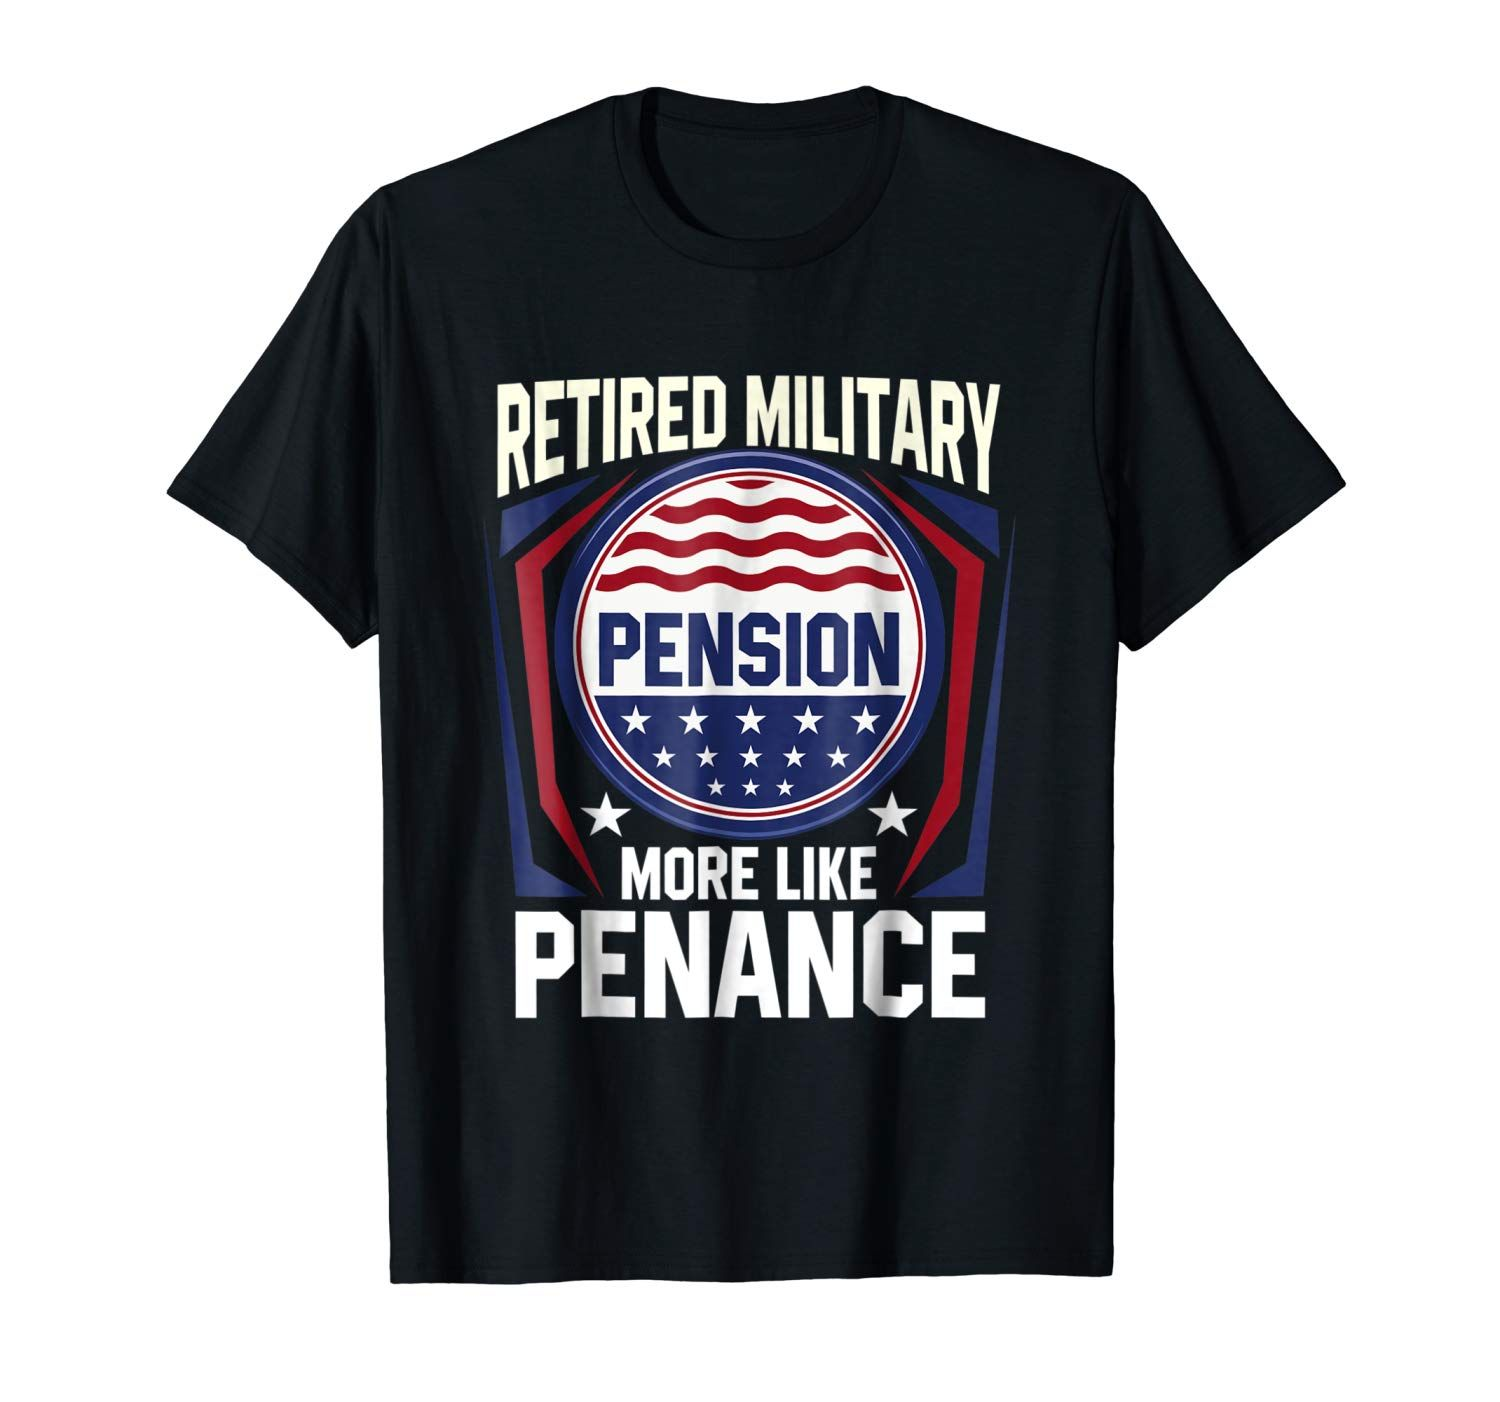 127b2129c62 Pension More Like Retired Army Military Hats Gifts Shirts https   www.amazon